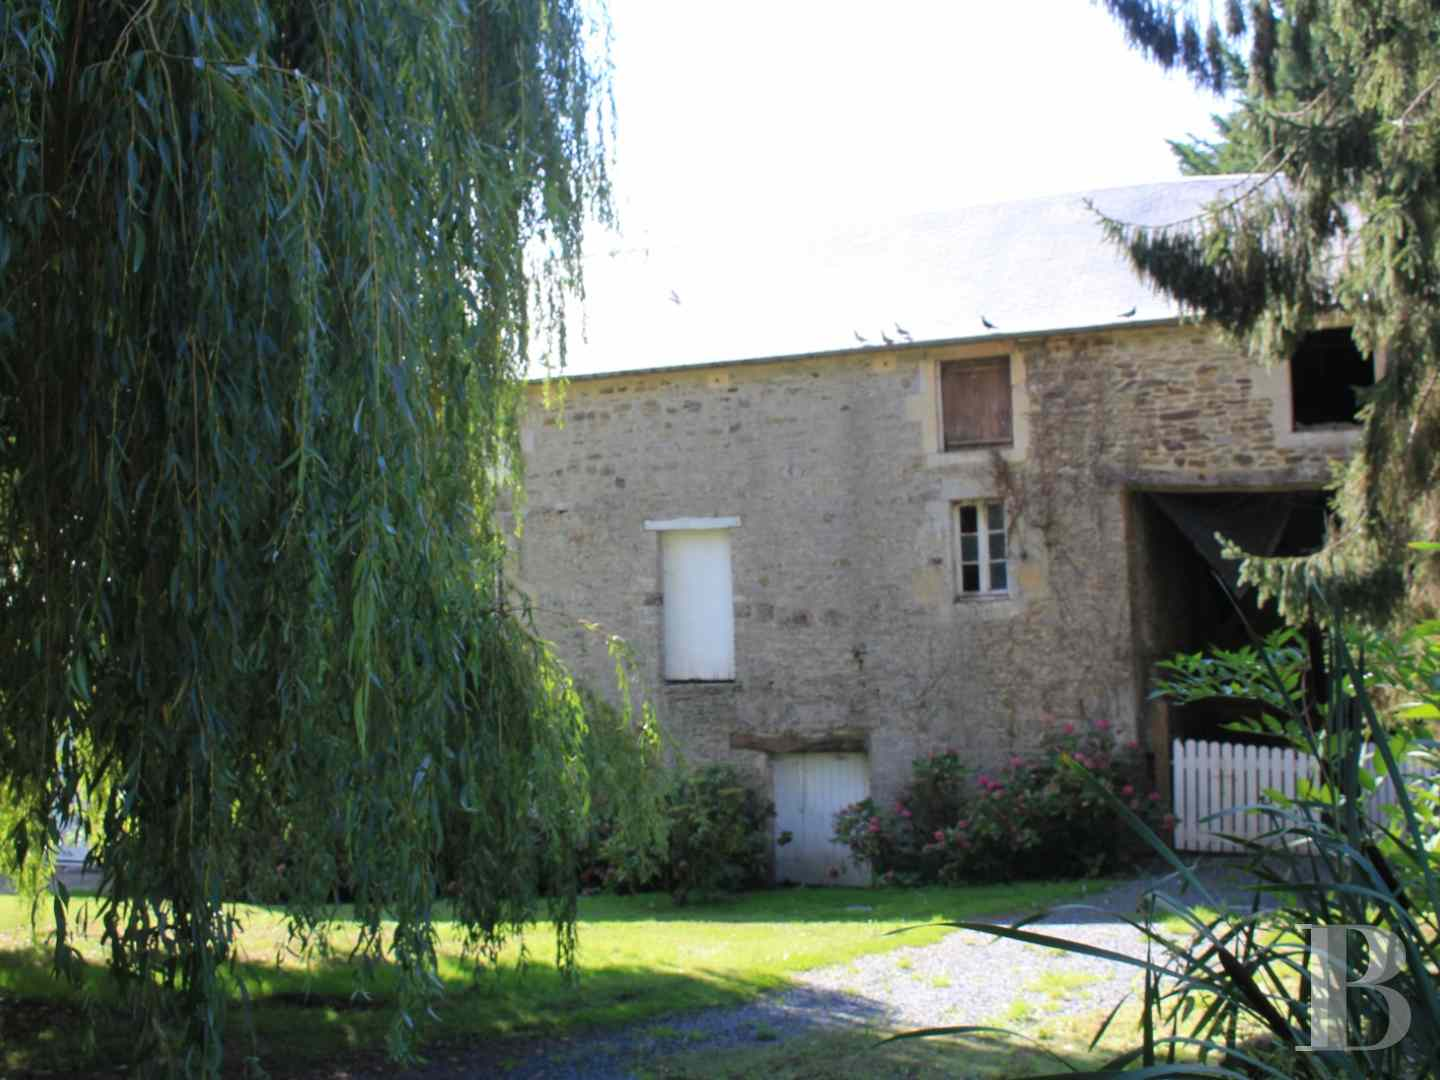 manoirs a vendre basse normandie manoir propriete - 11 zoom